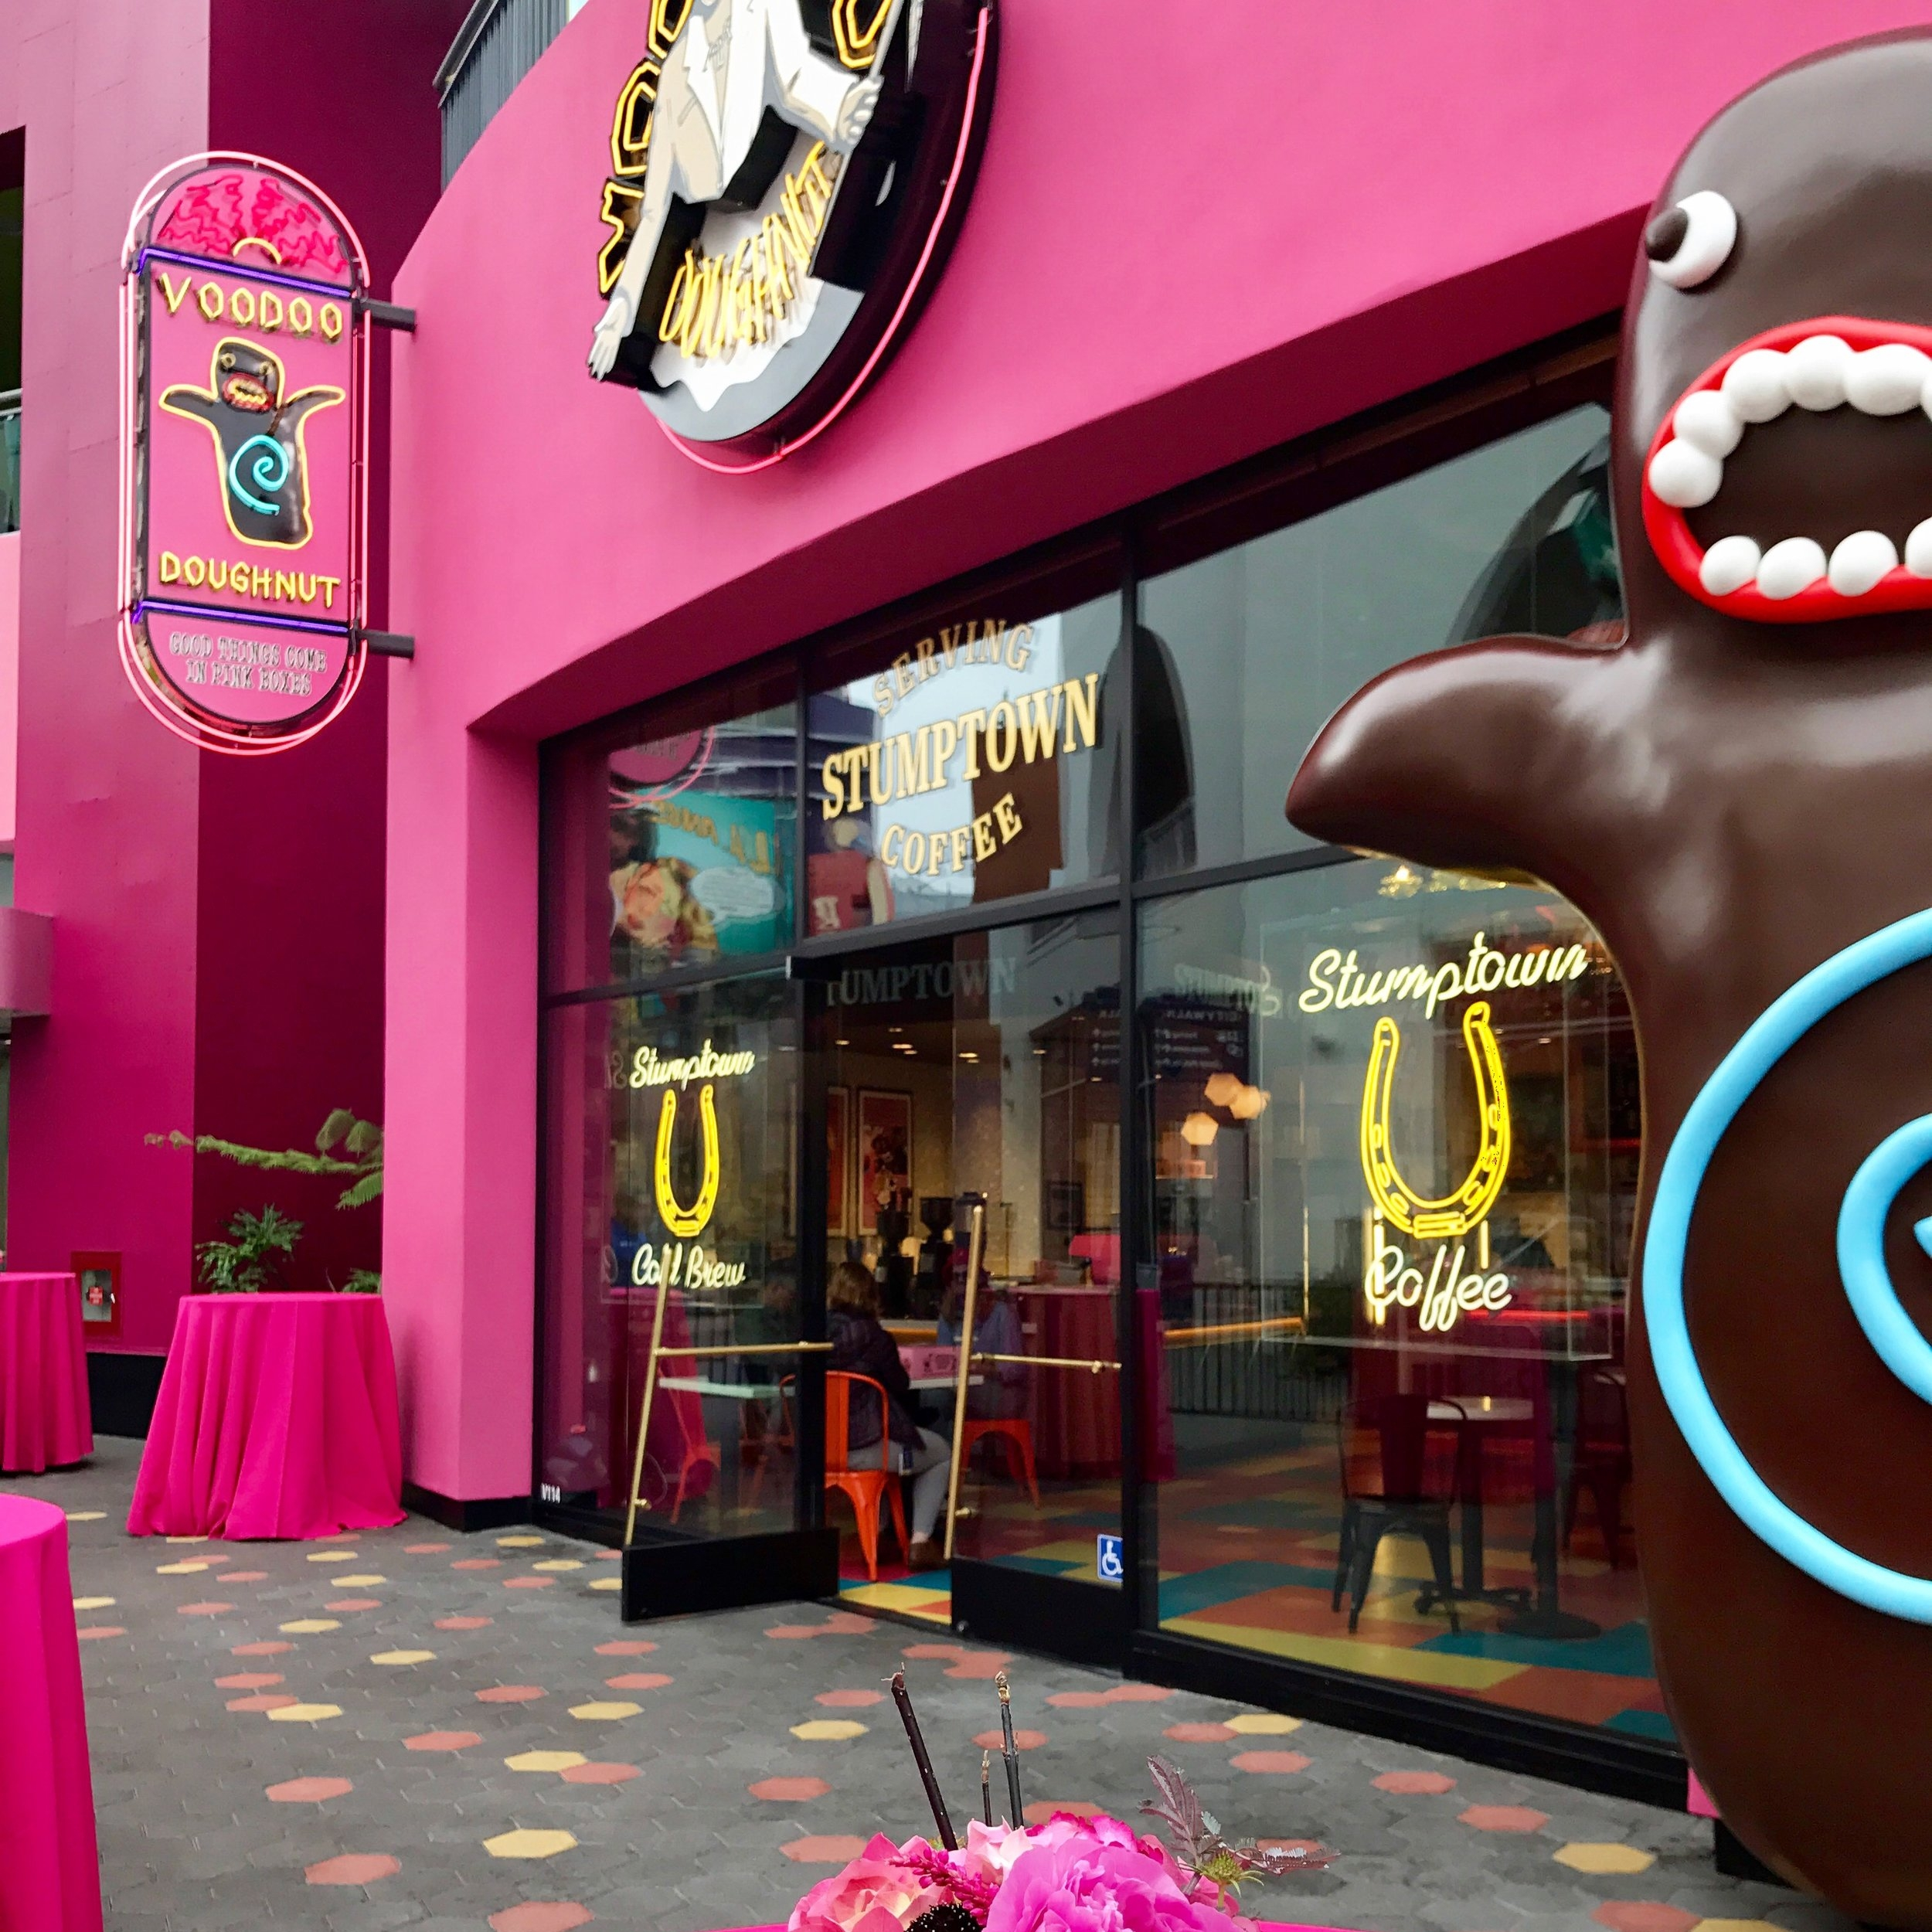 NBCUNIVERSAL | Voodoo Doughnuts Press Event | 06.1.17 Universal City Walk, Hollywood